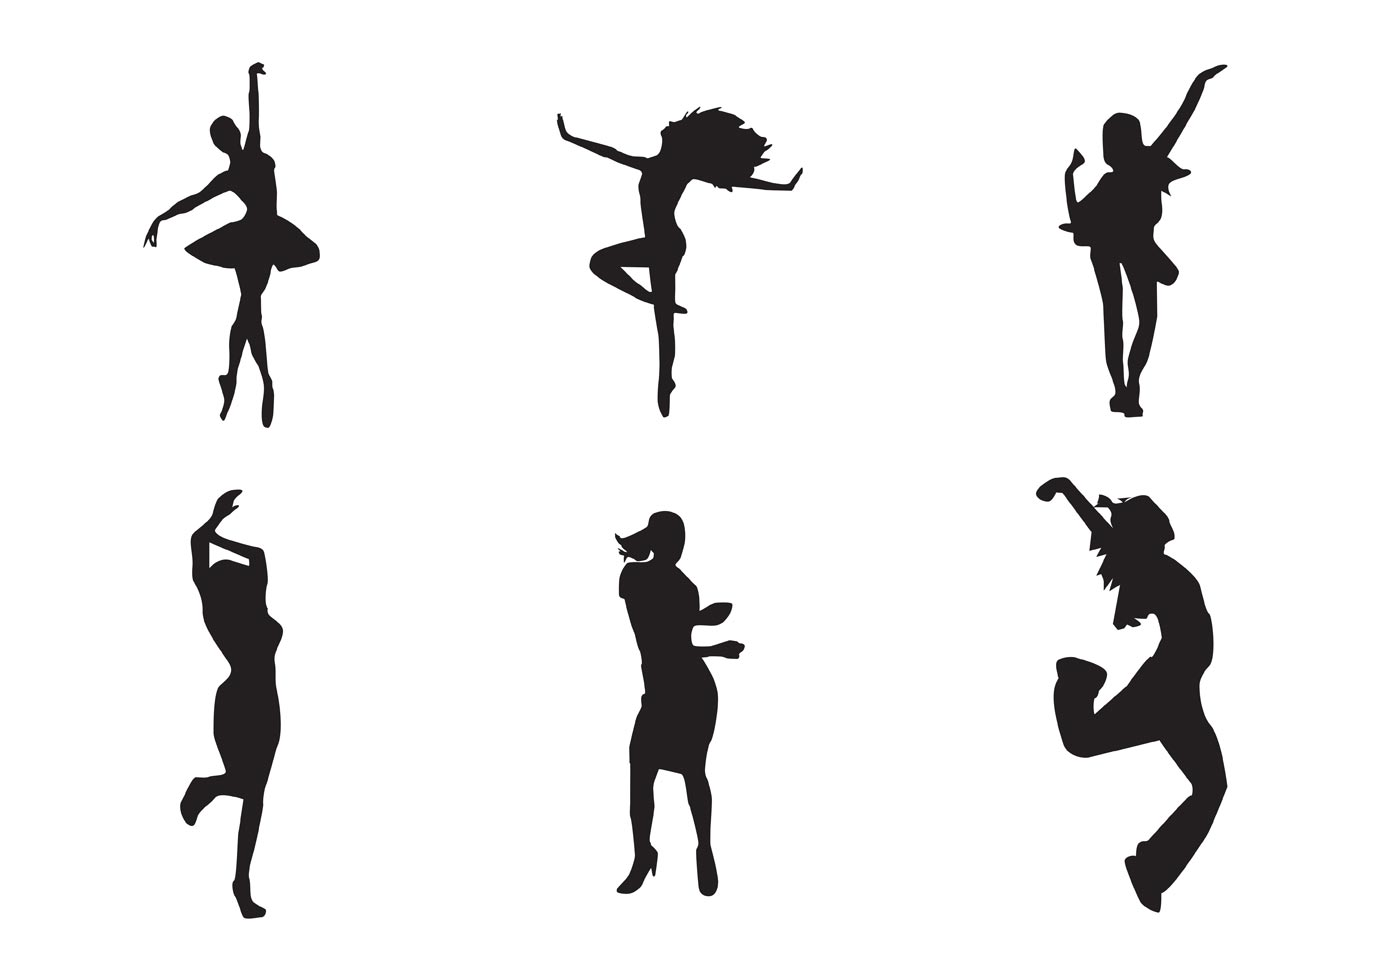 free vector dancing girl silhouettes download free vector art